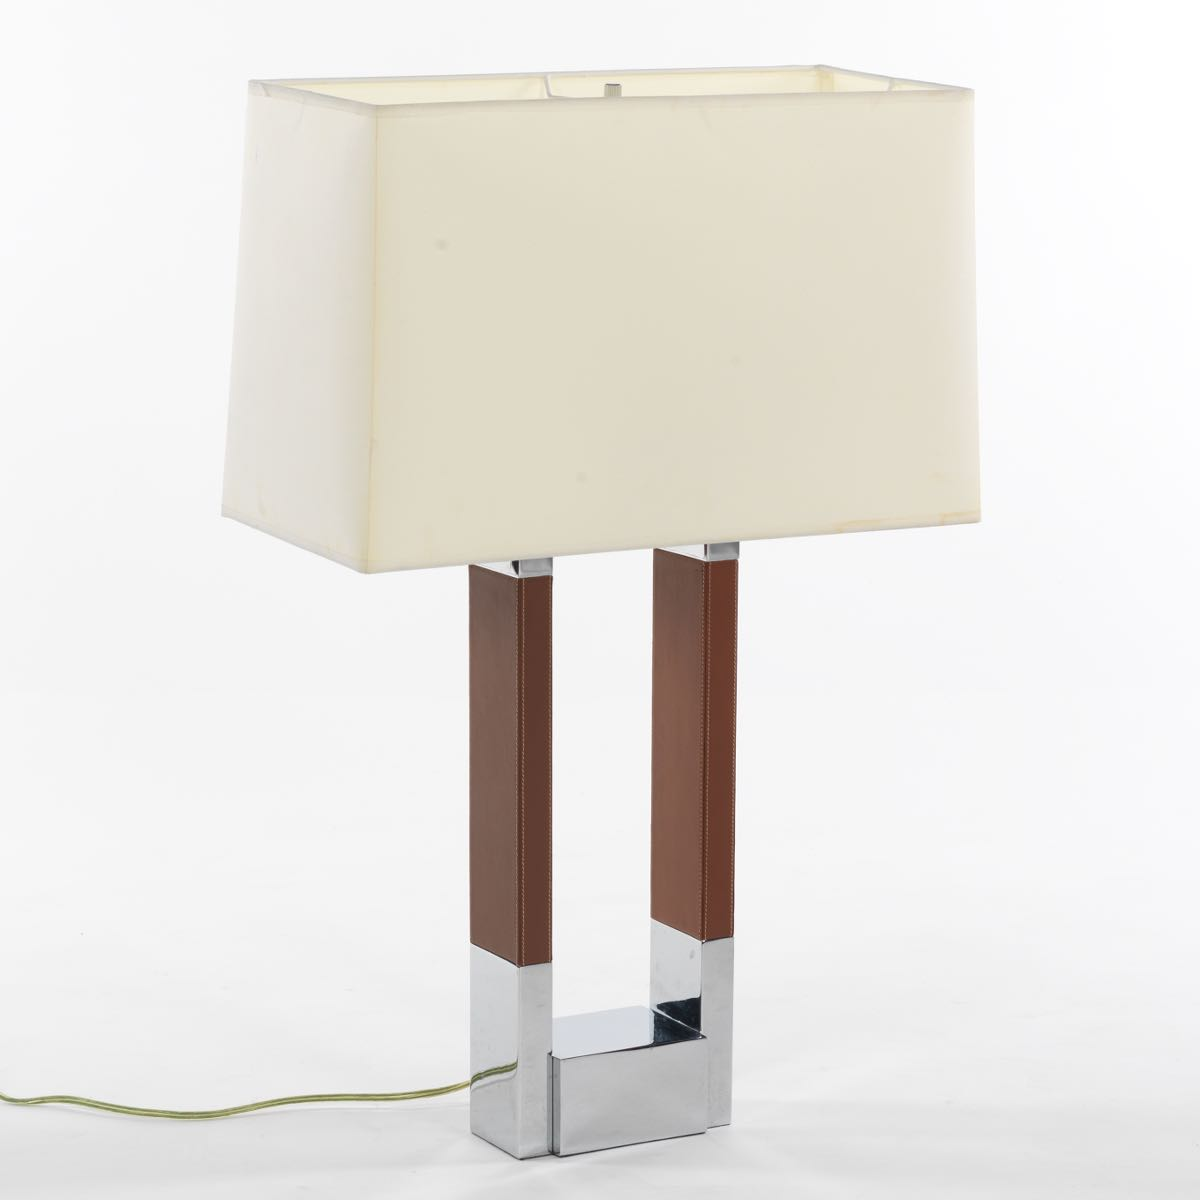 Ralph lauren metal and brown leather open frame table lamp 1211 ralph lauren metal and brown leather open frame table lamp aloadofball Choice Image